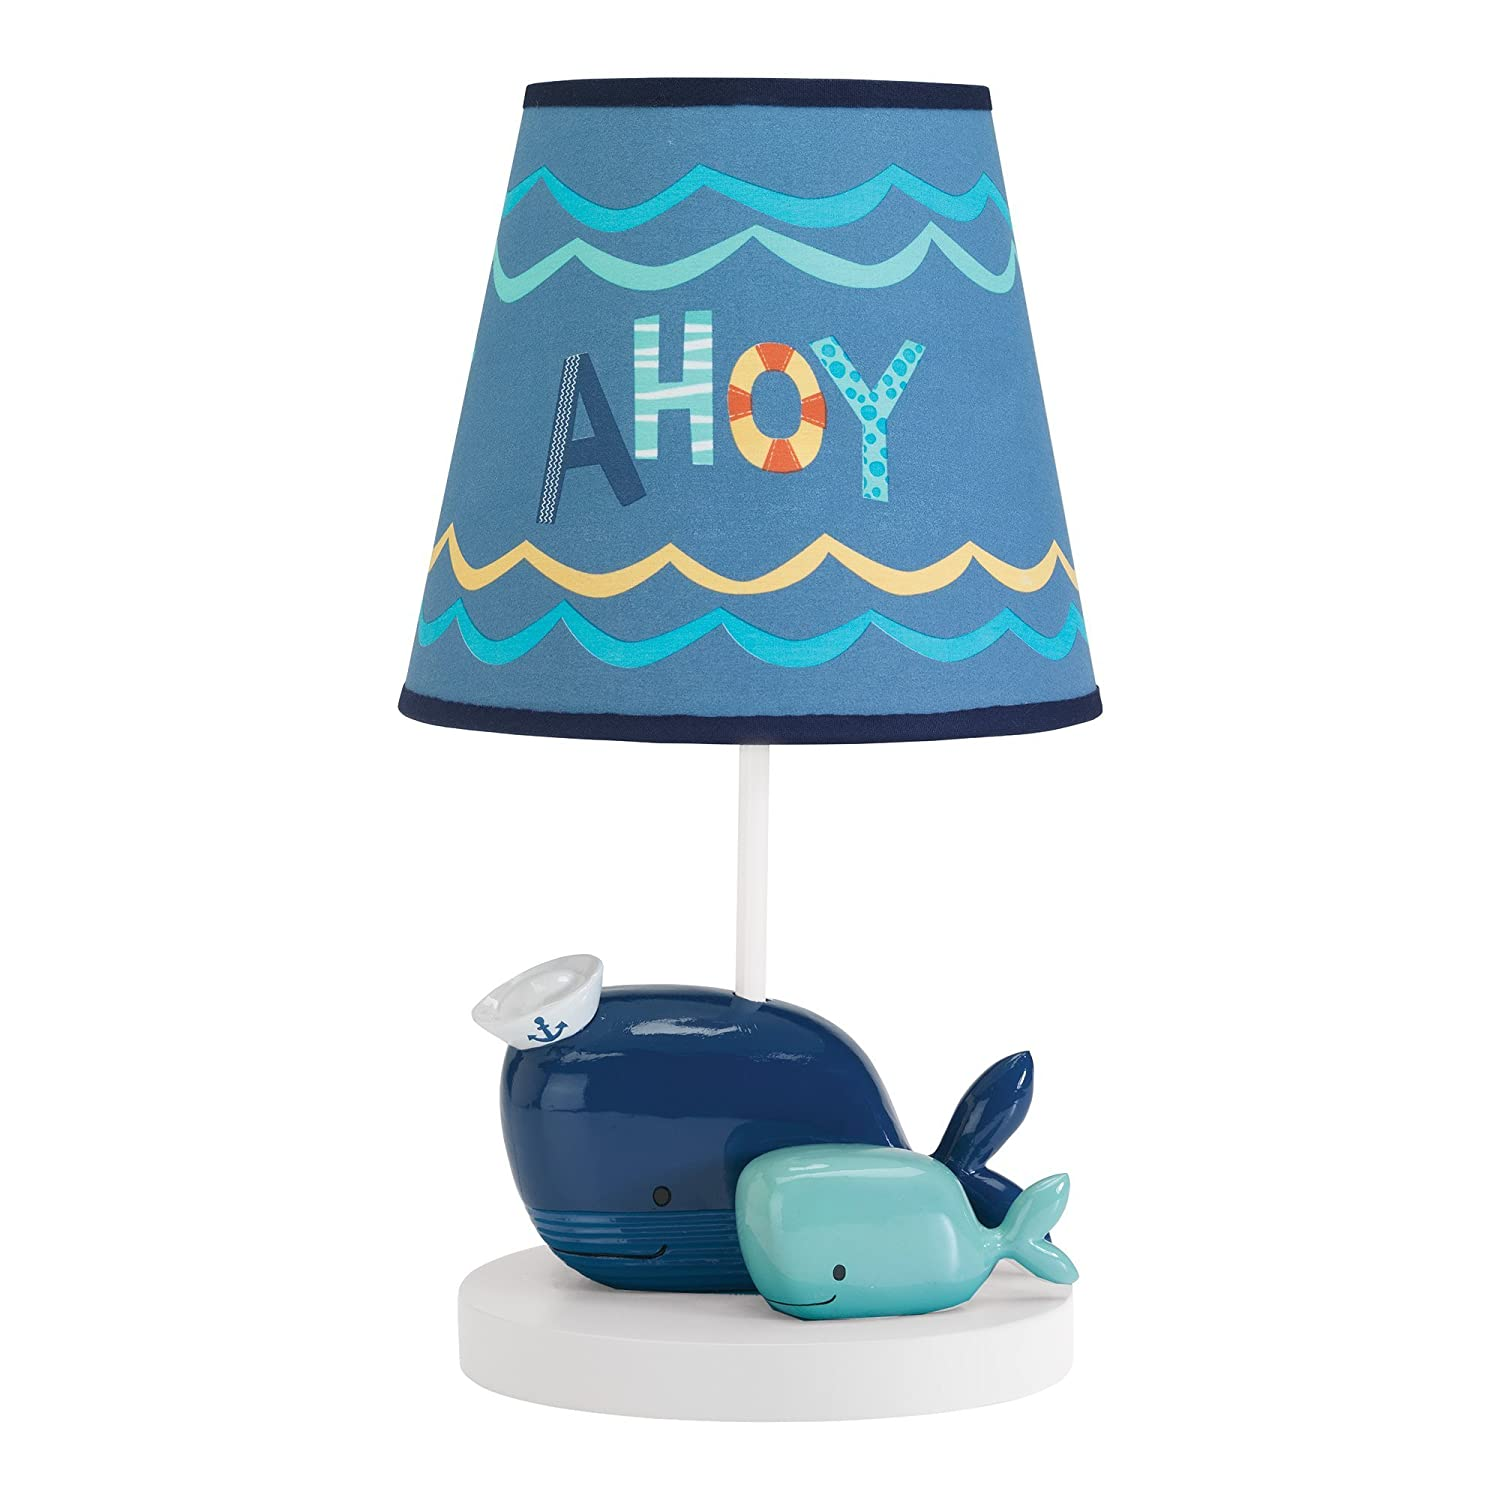 Lambs & Ivy Ahoy Blue Whale Lamp with Shade and Bulb